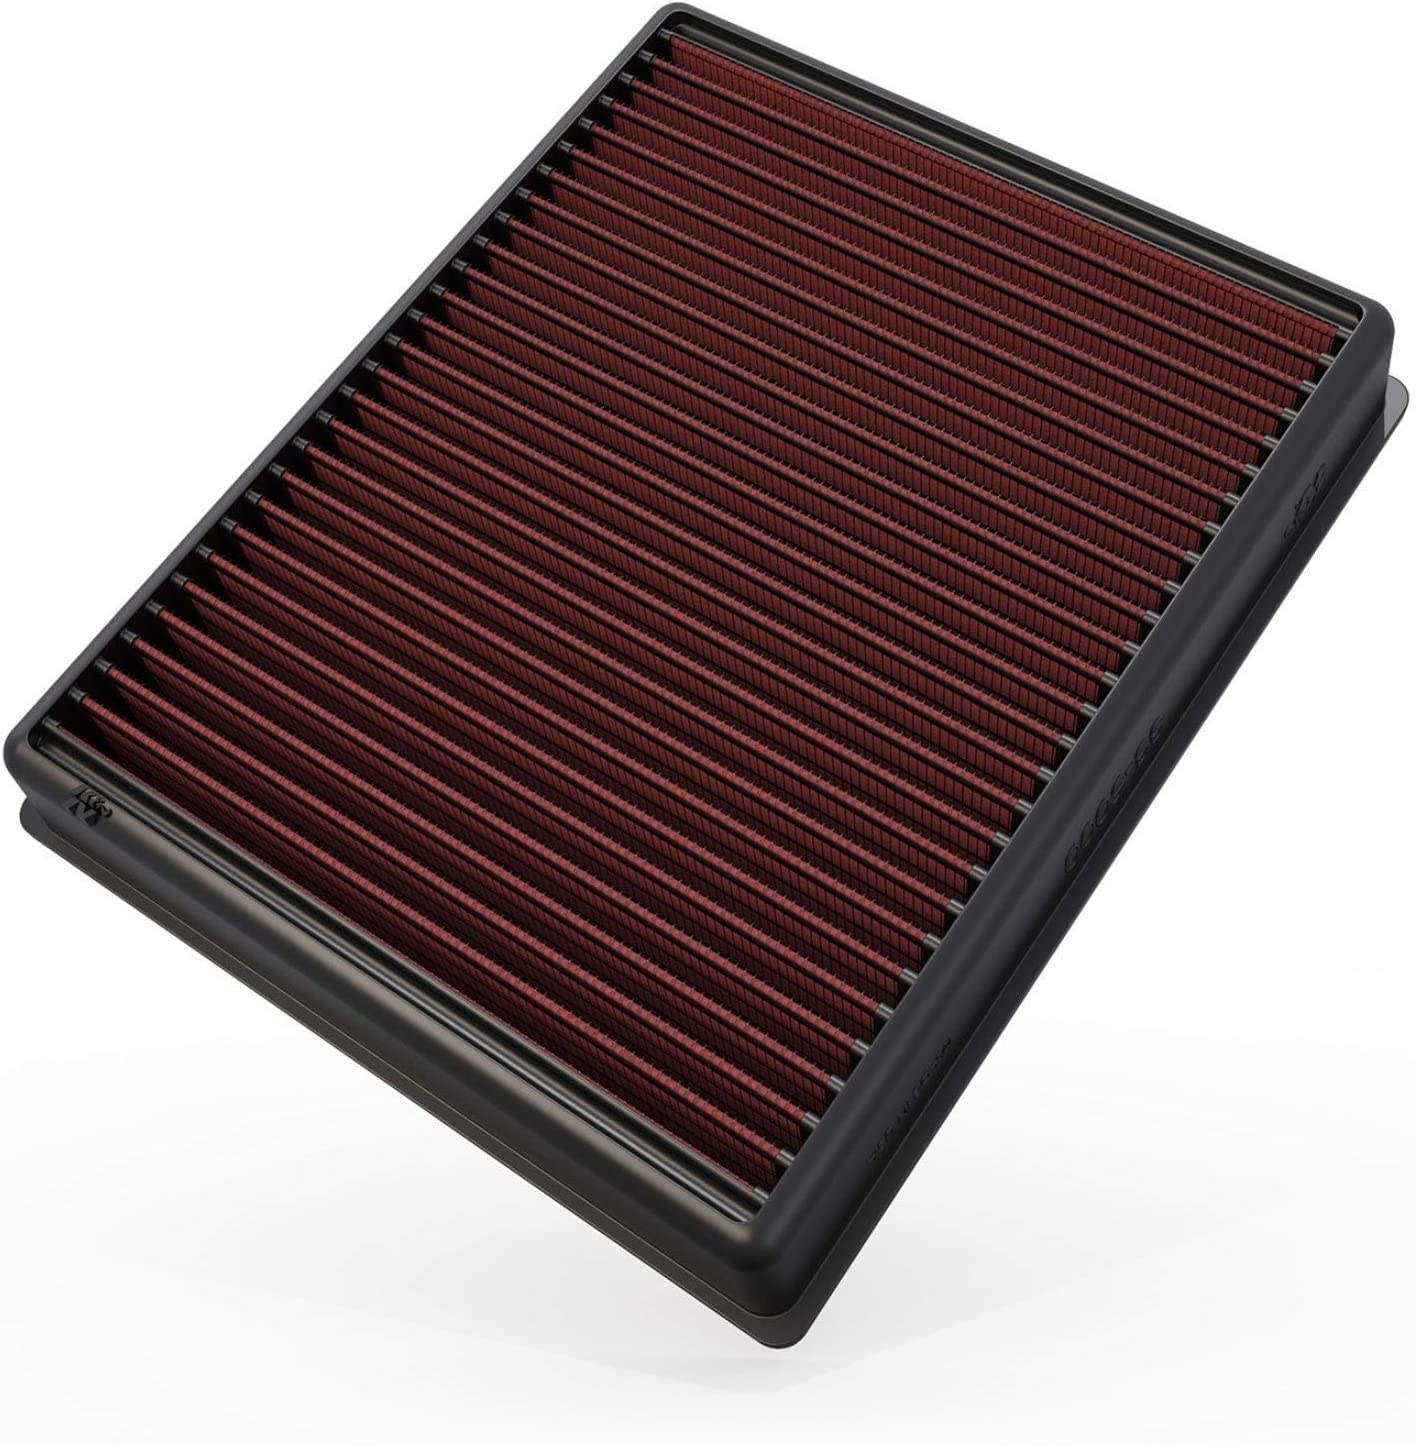 K&N Engine Air Filter: High Performance, Premium, Washable, Replacement Filter: 2013-2019 Ford/Lincoln (Edge, Fusion, Galaxy, Mondeo, S-Max, Continental, MKZ), 33-5000